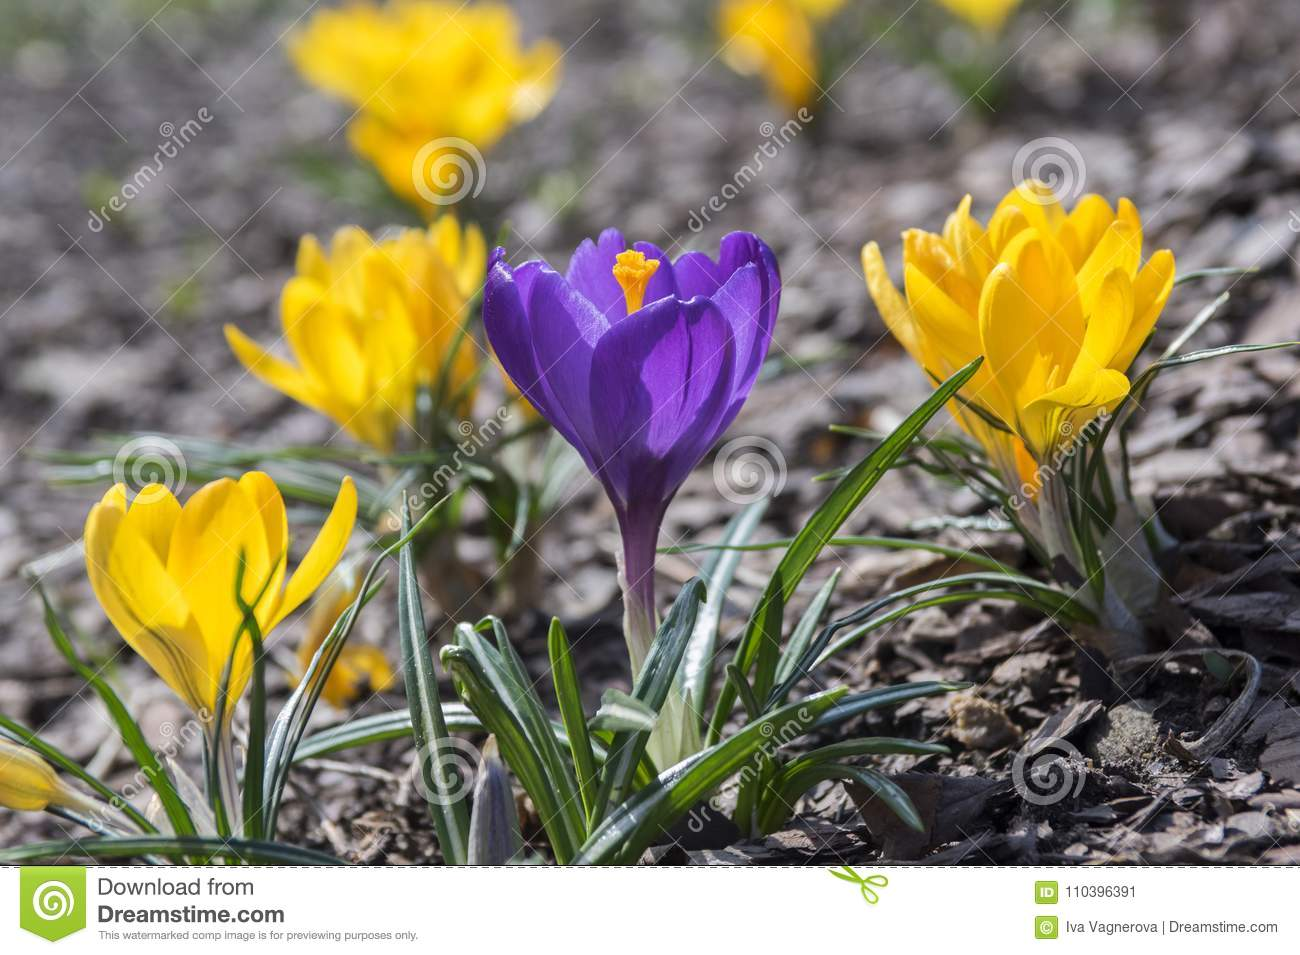 Crocus Vernus In Bloom Yellow And Purple Flowers Stock Image